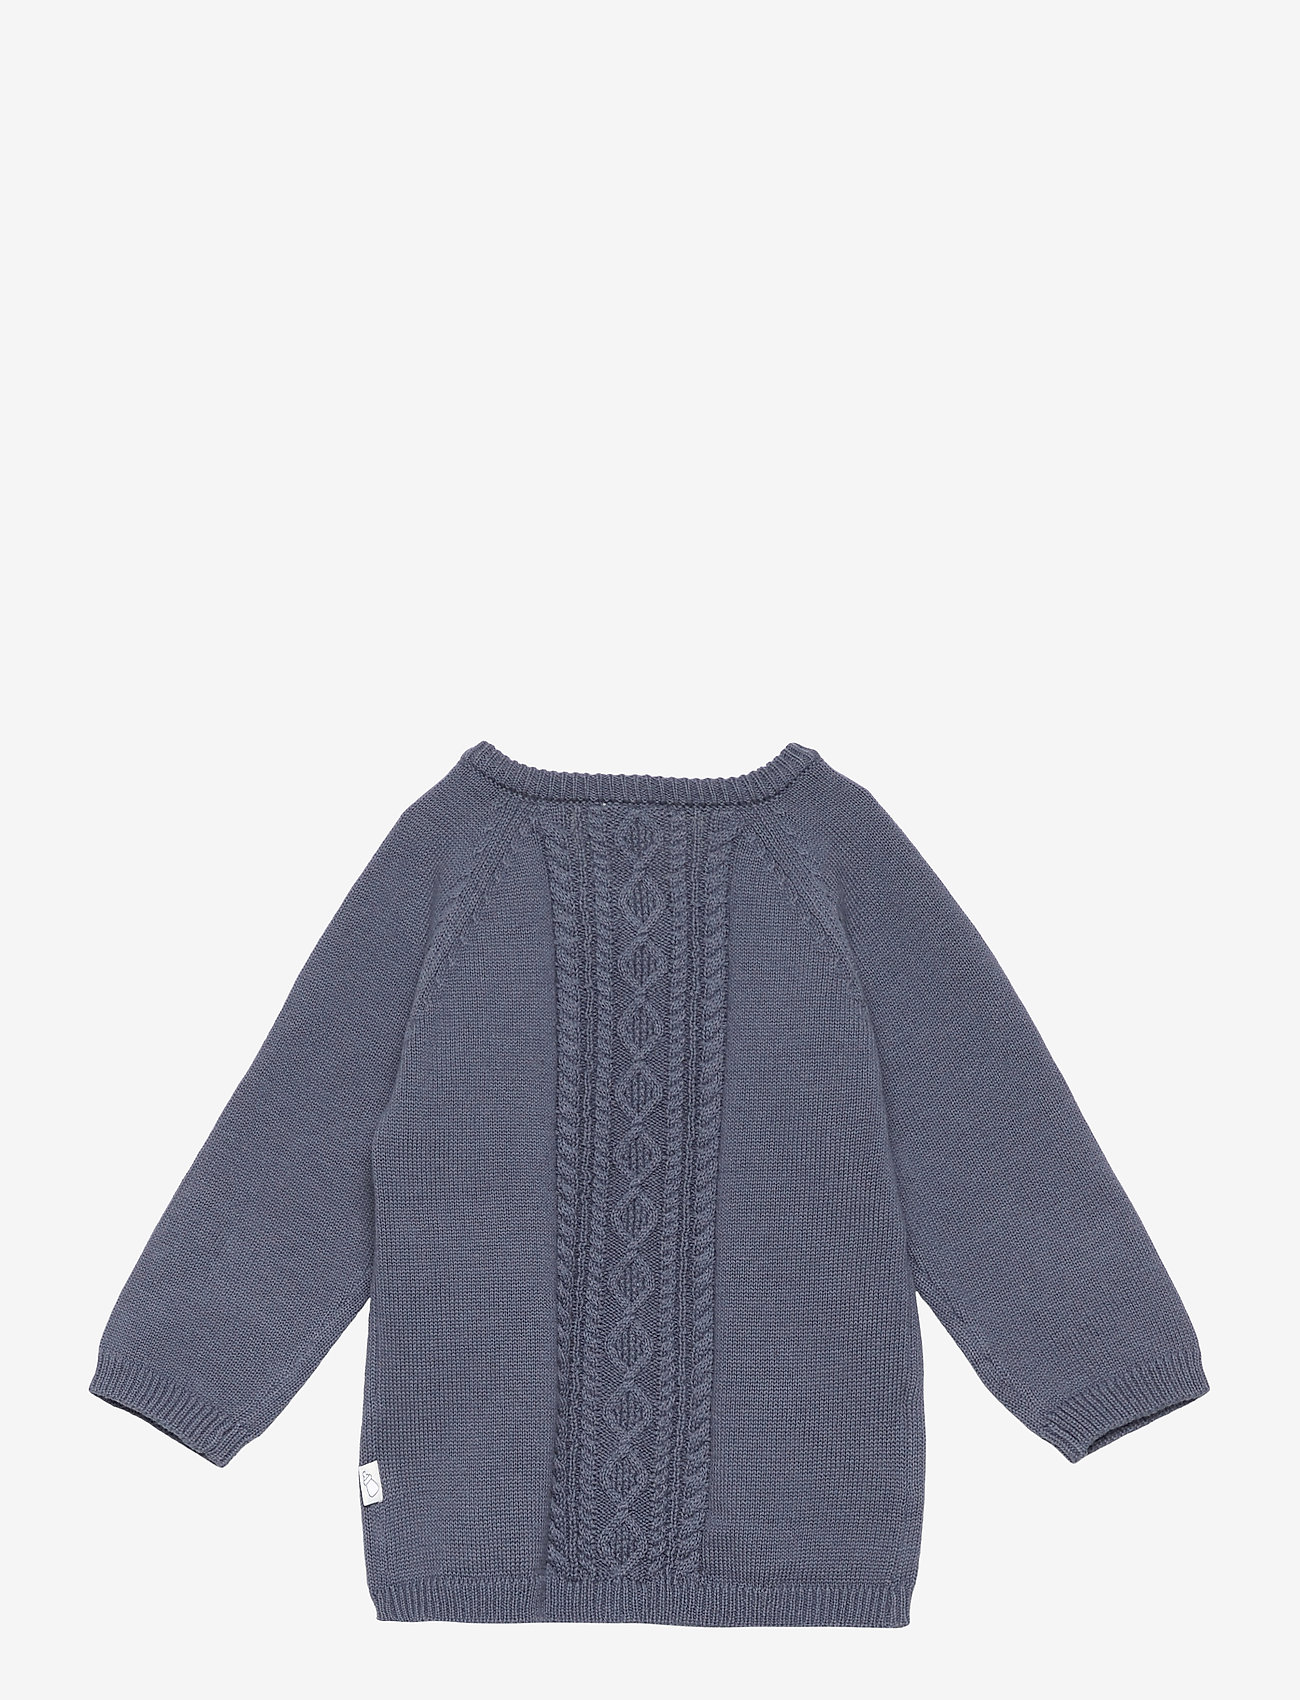 Hust & Claire - Cammie - Cardigan - gilets - blue storm - 1